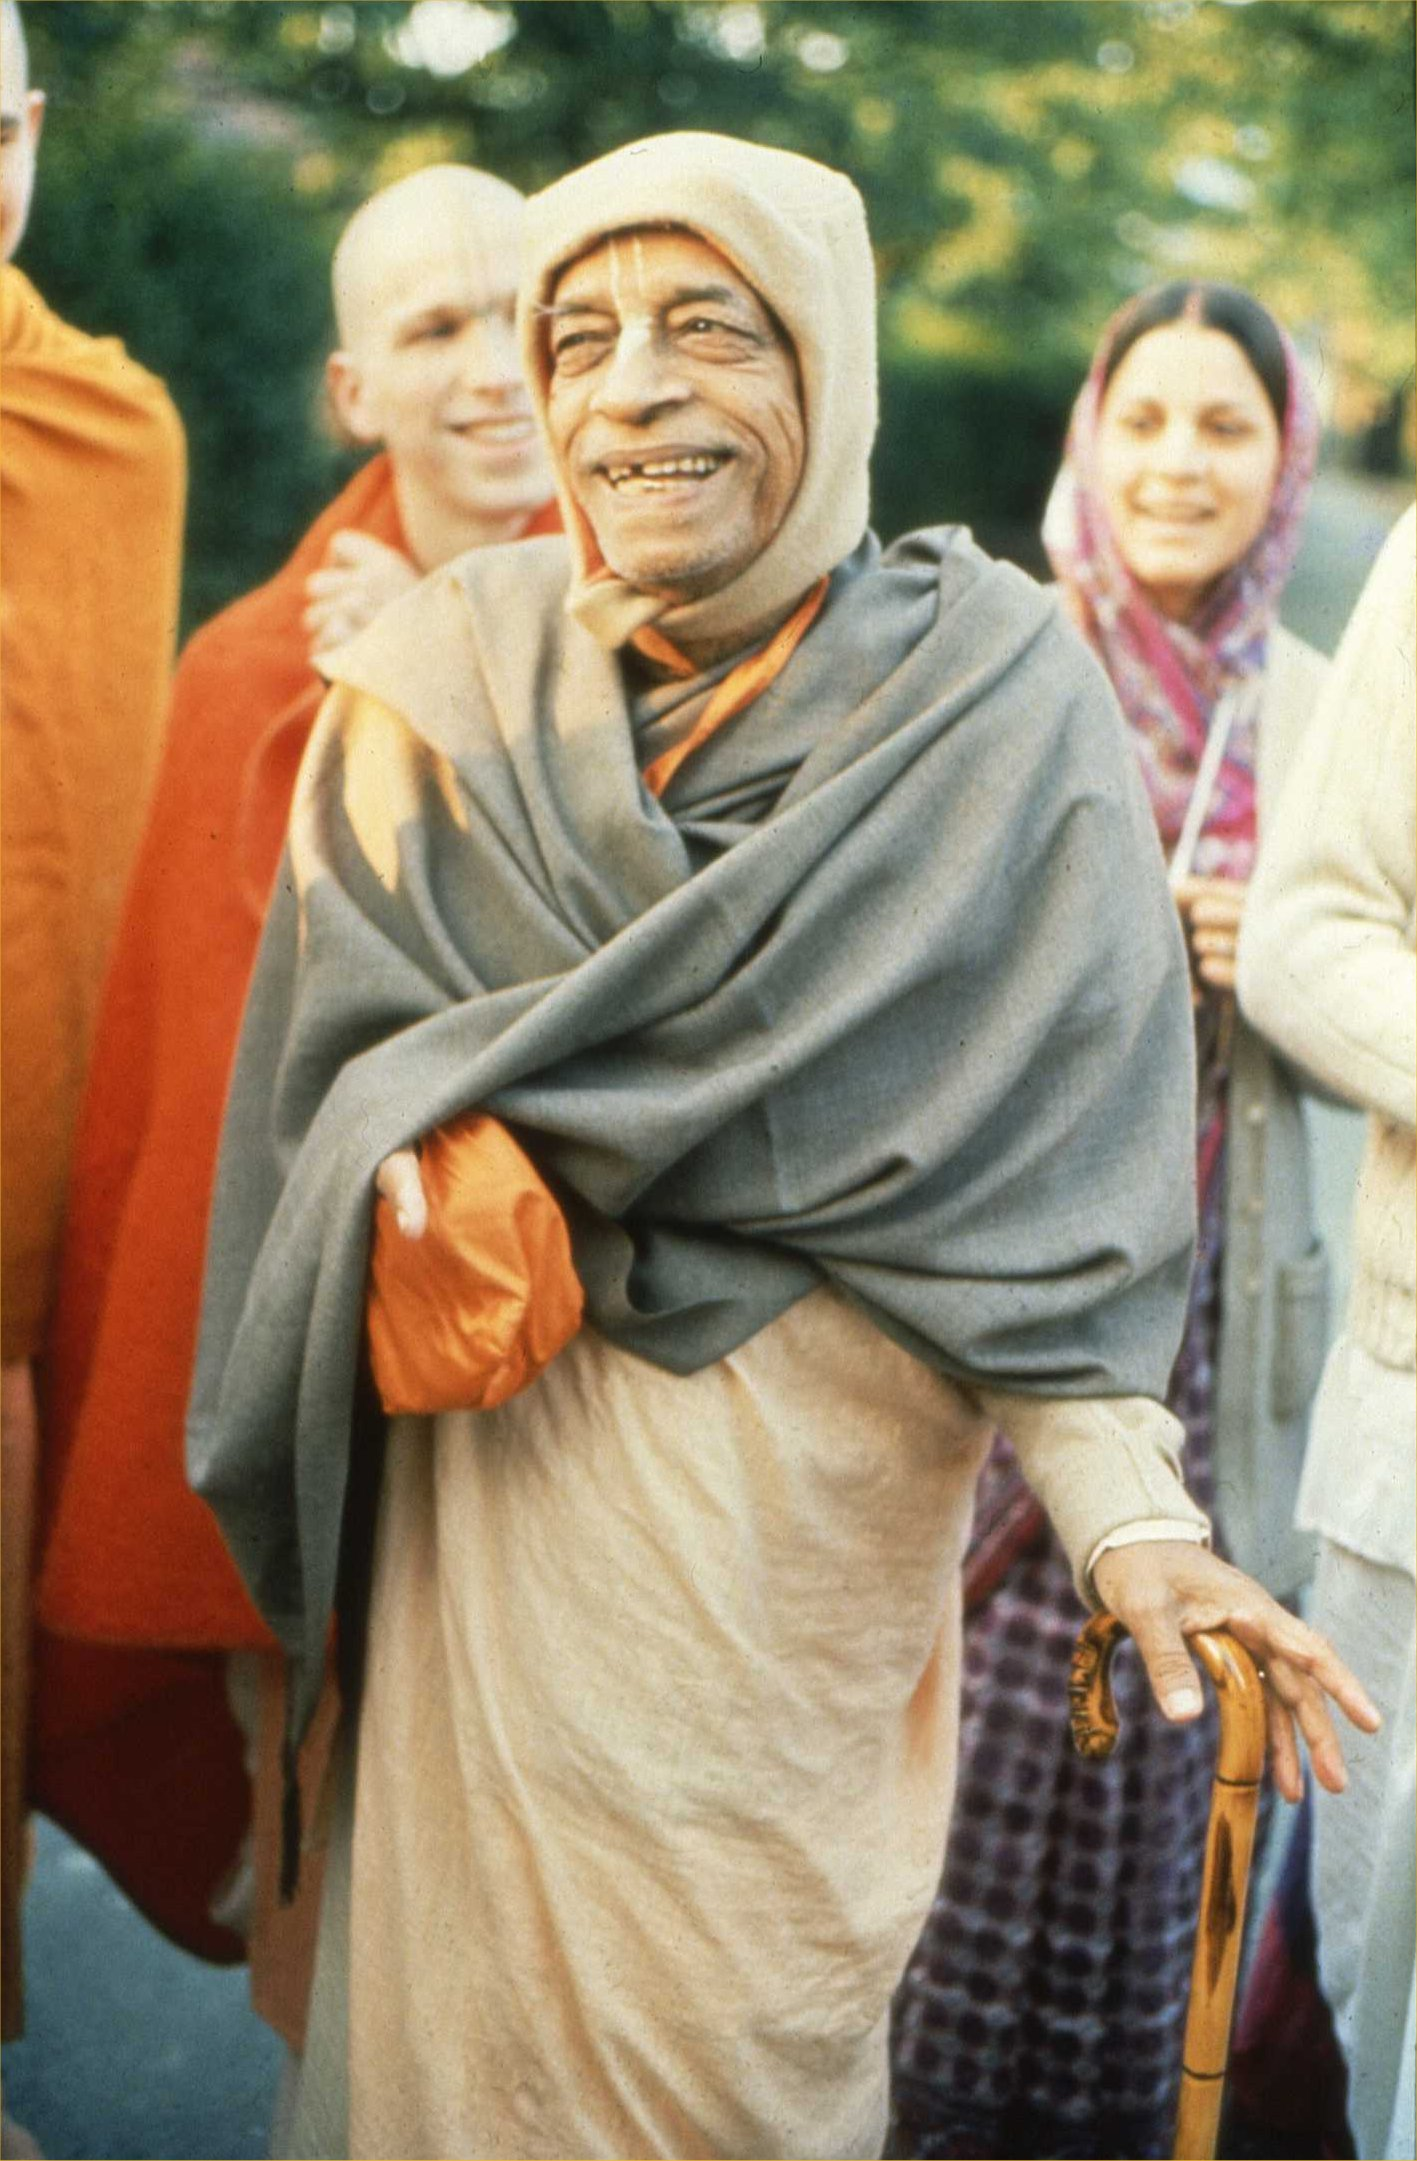 Photograph of Bhaktivedanta Swami Prabhupada, founder of the International Society for Krishna Consciousness, with his disciples in 1974.